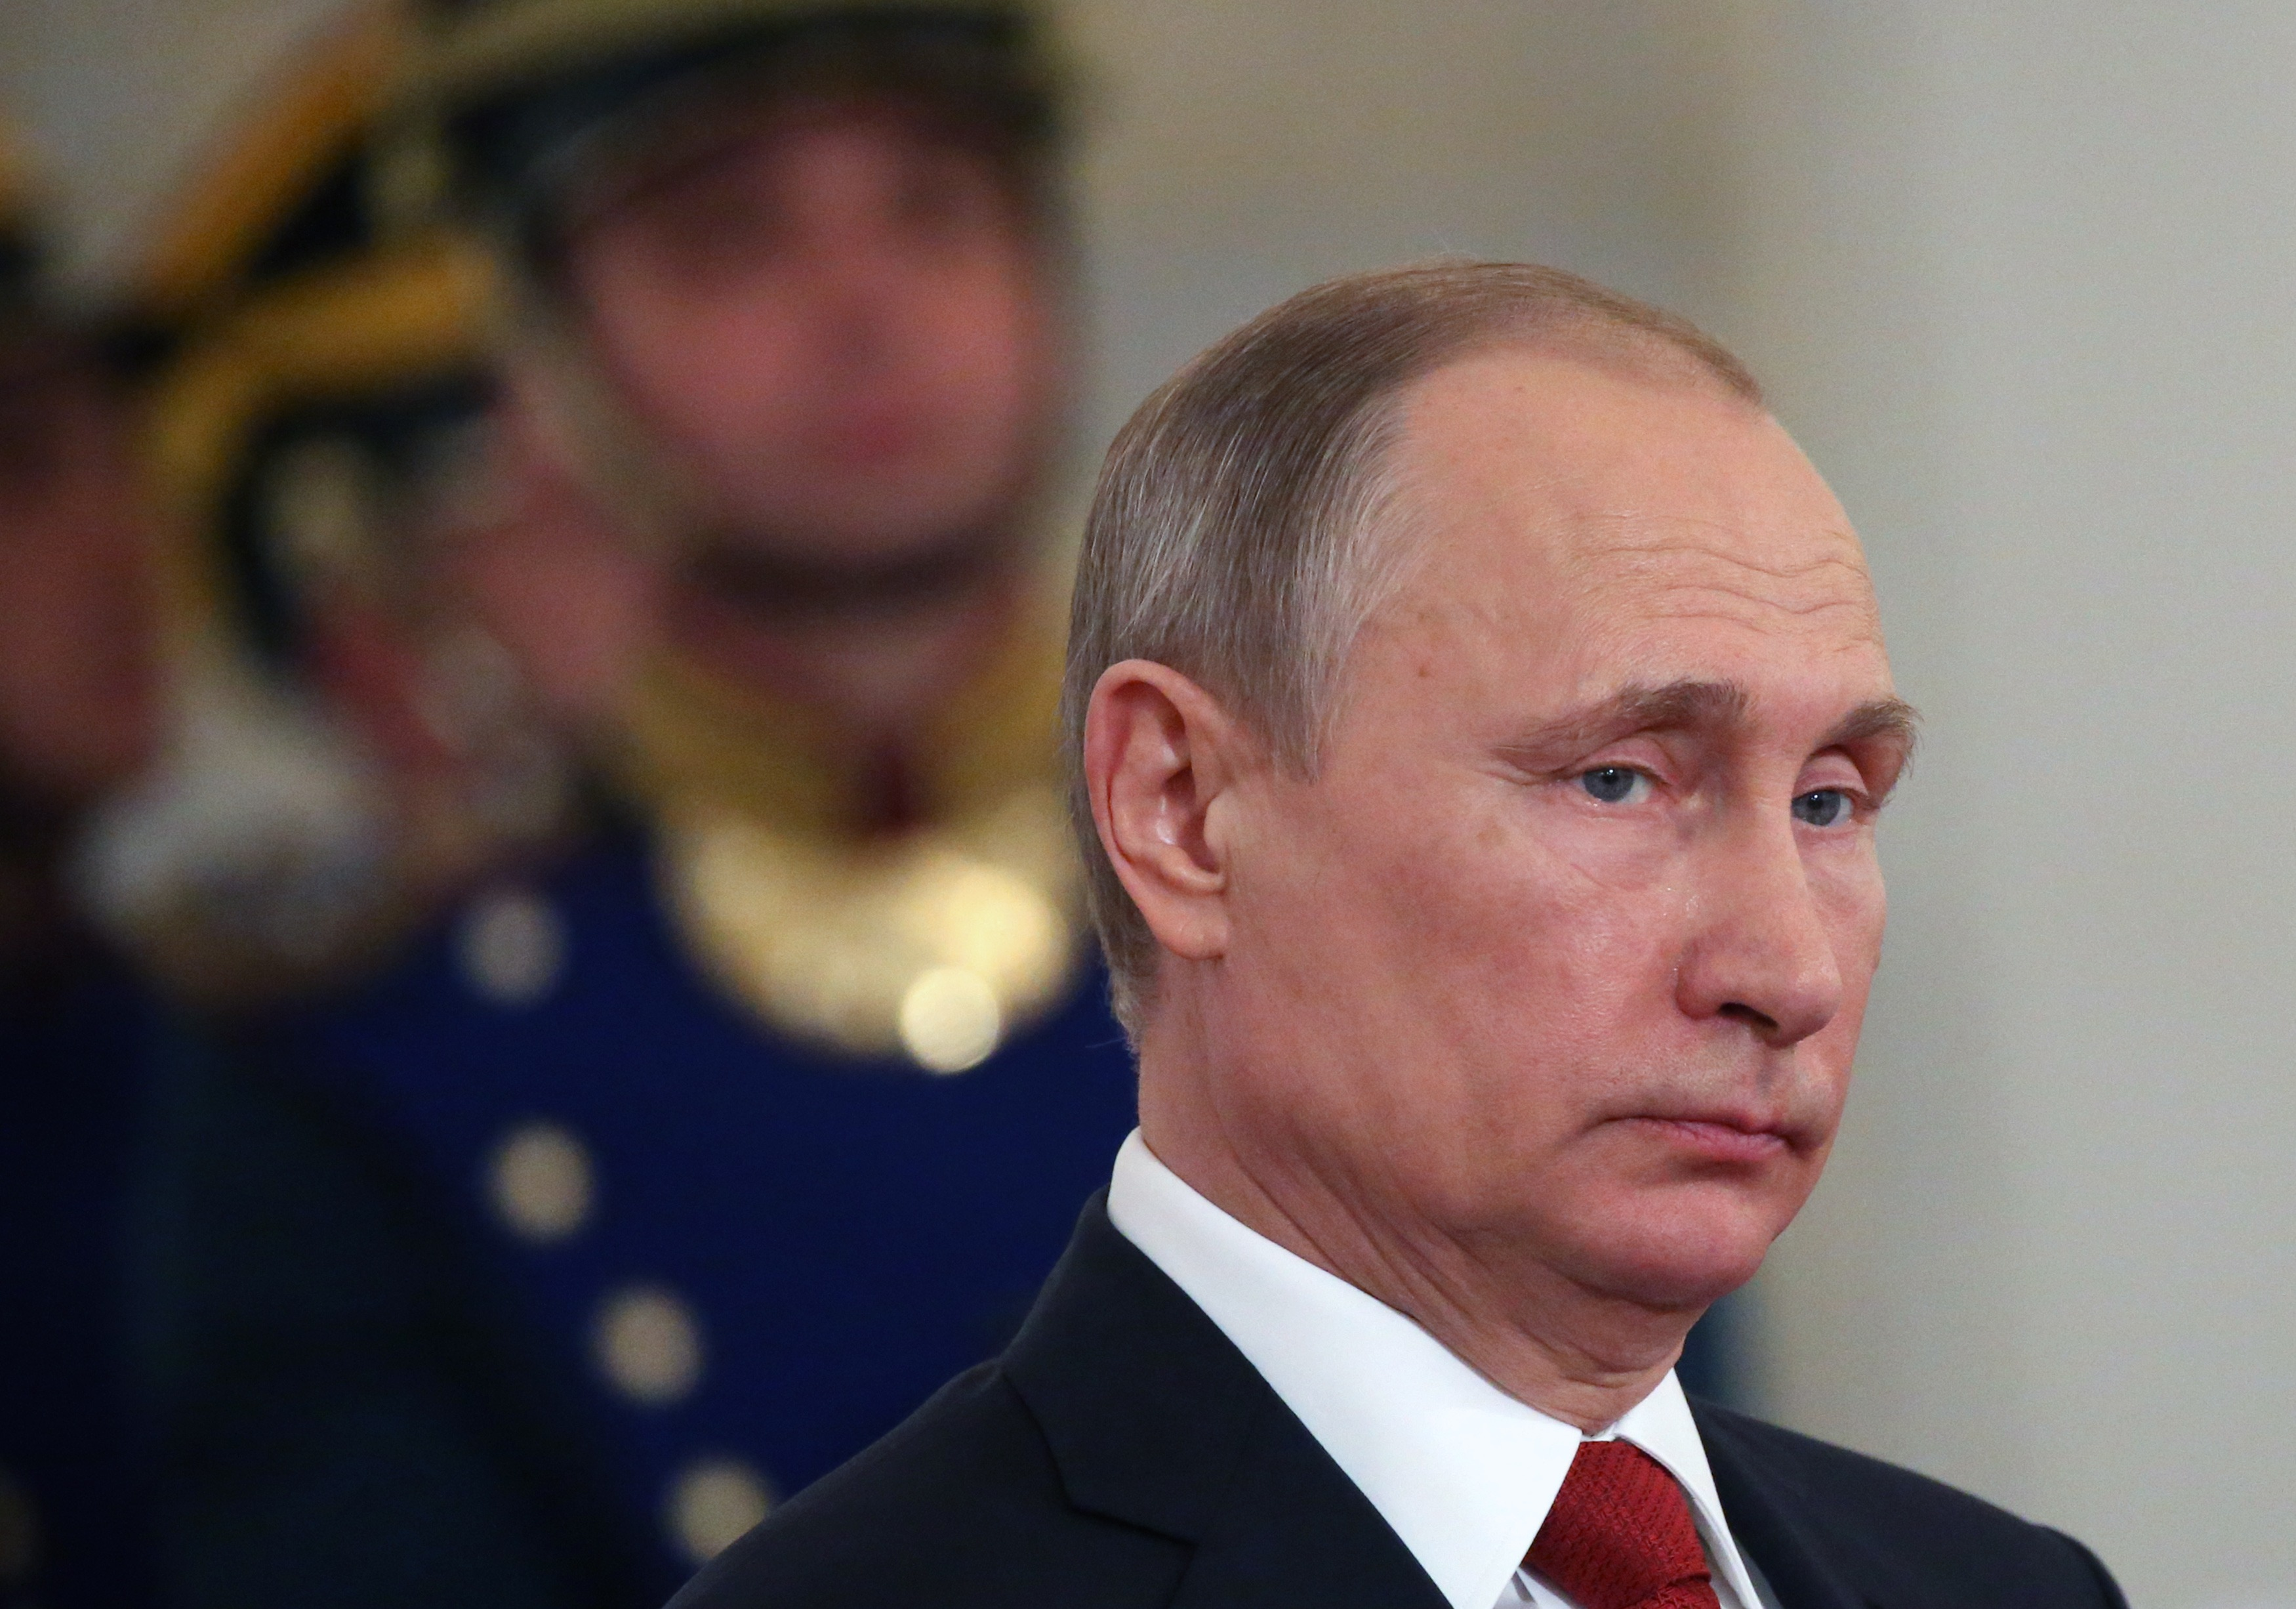 Russian President Vladimir Putin gives a speech during the state awards ceremony at the Grand Kremlin Palace on June 12, 2017 in Moscow, Russia.